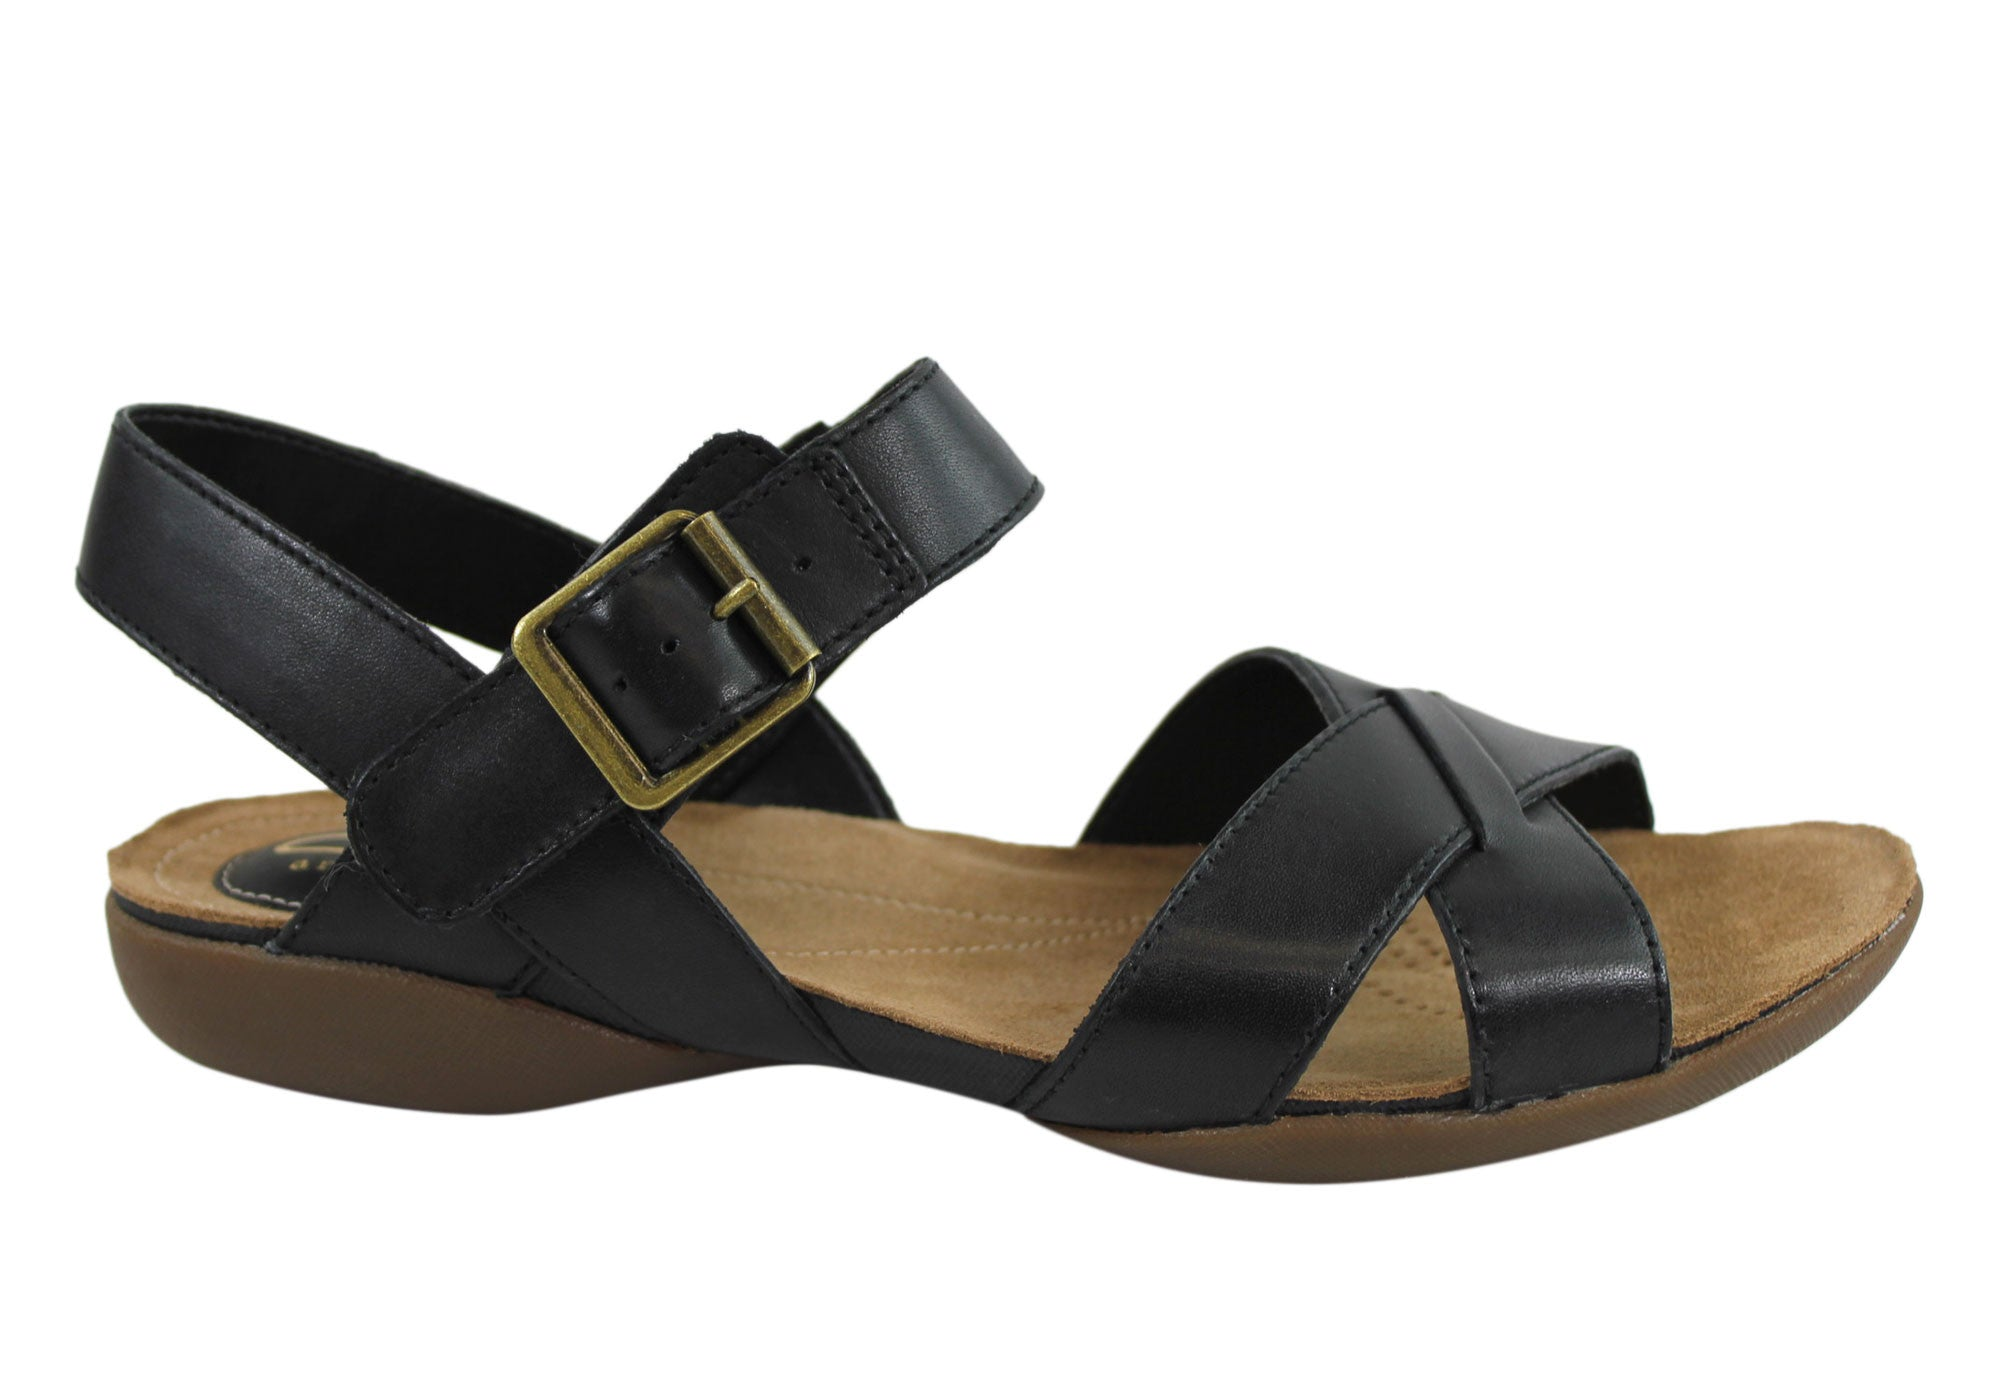 56dd78a90ac7 Home Clarks Raffi Flower Womens Comfortable Leather Sandals. Black ...